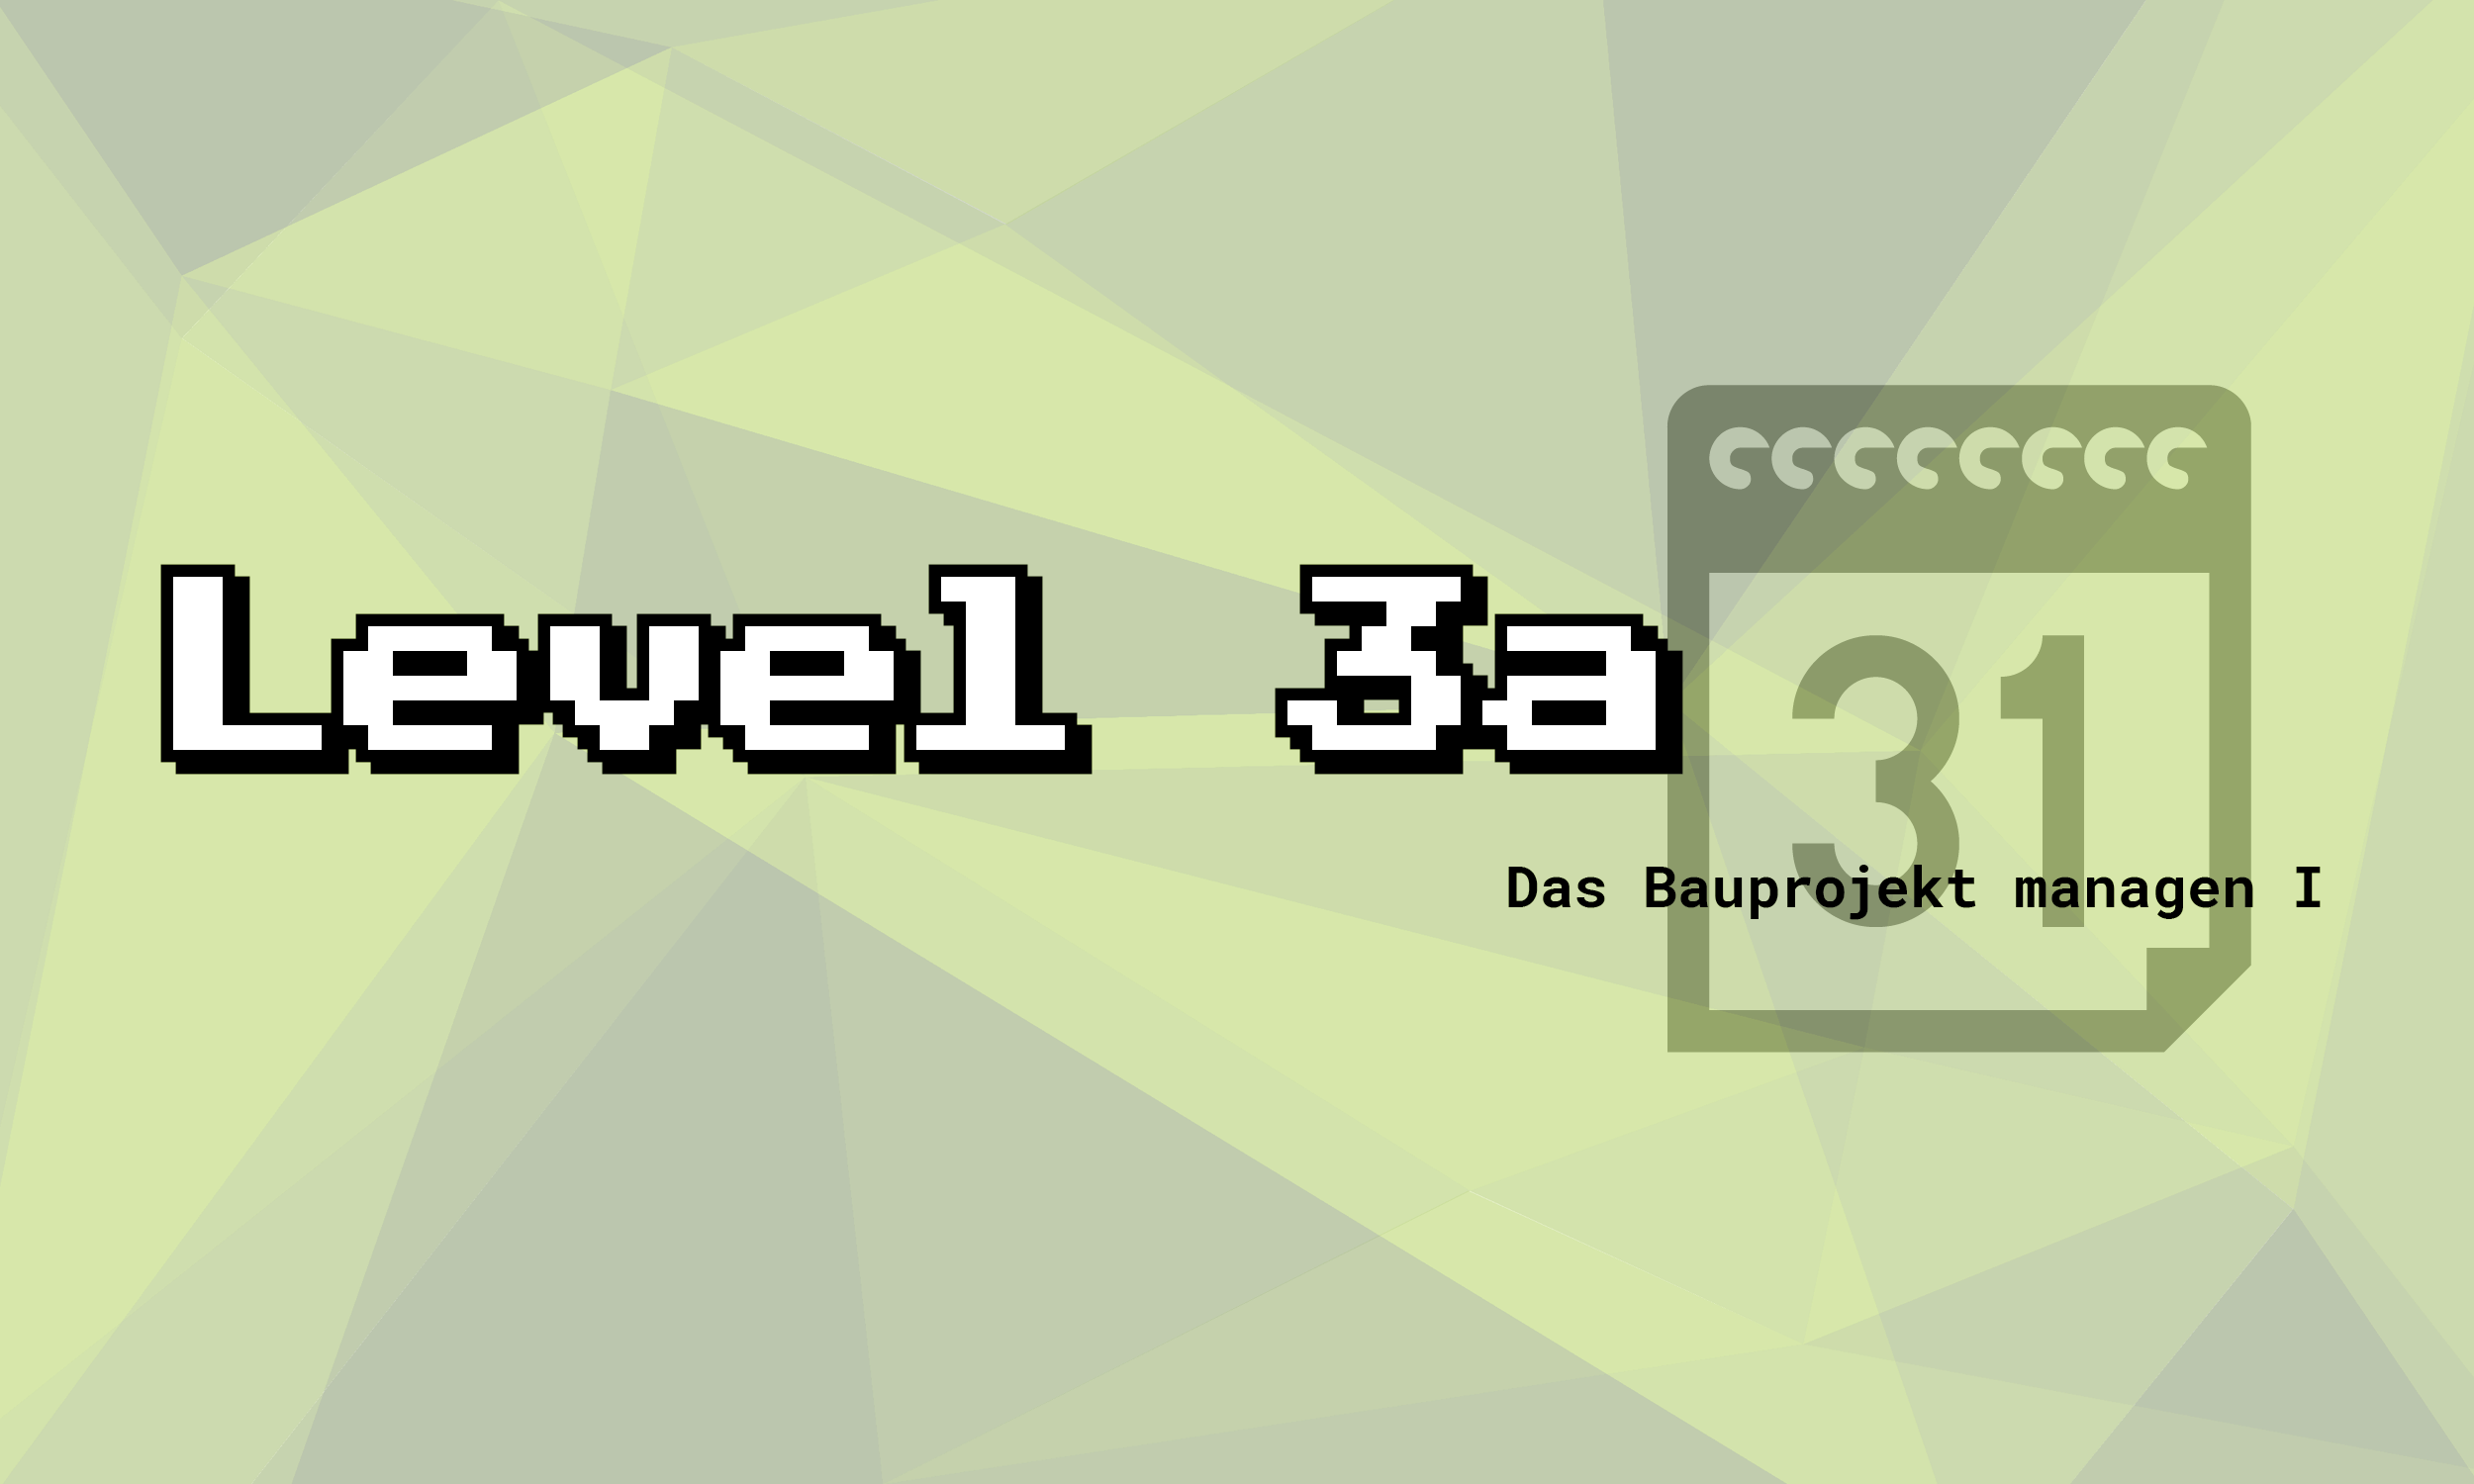 Level 3a